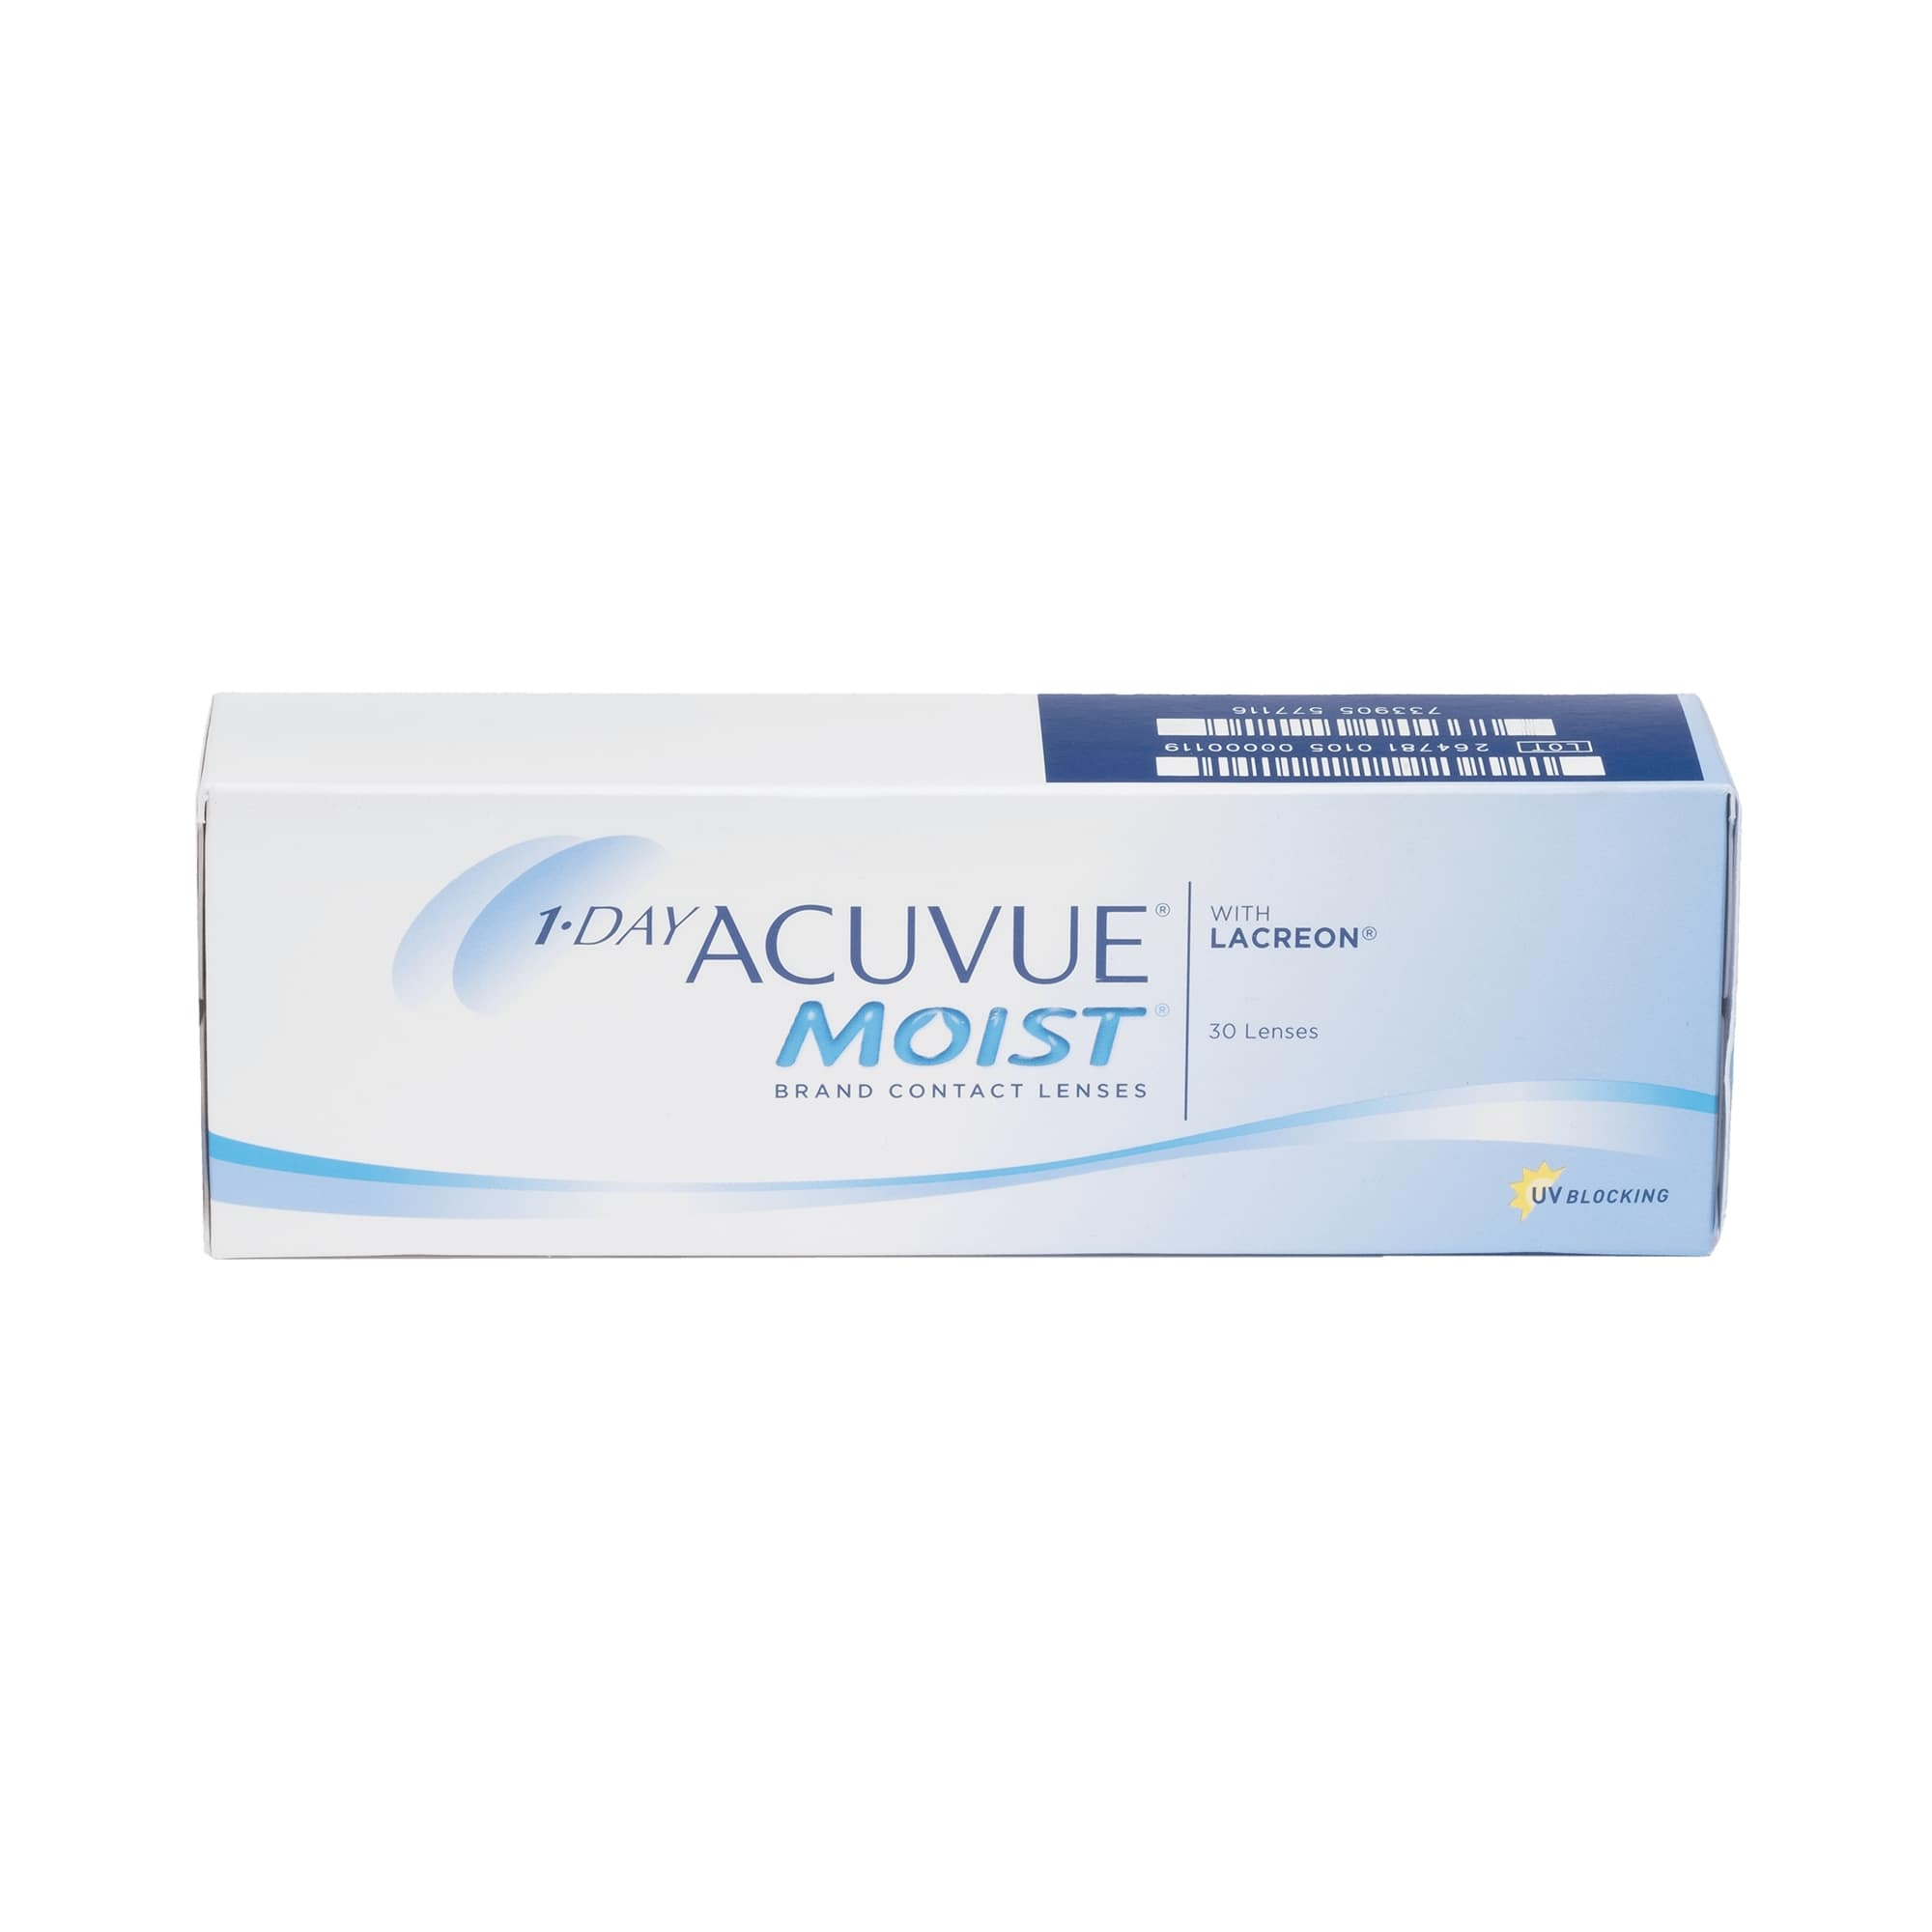 Acuvue Moist - 30 contact lenses